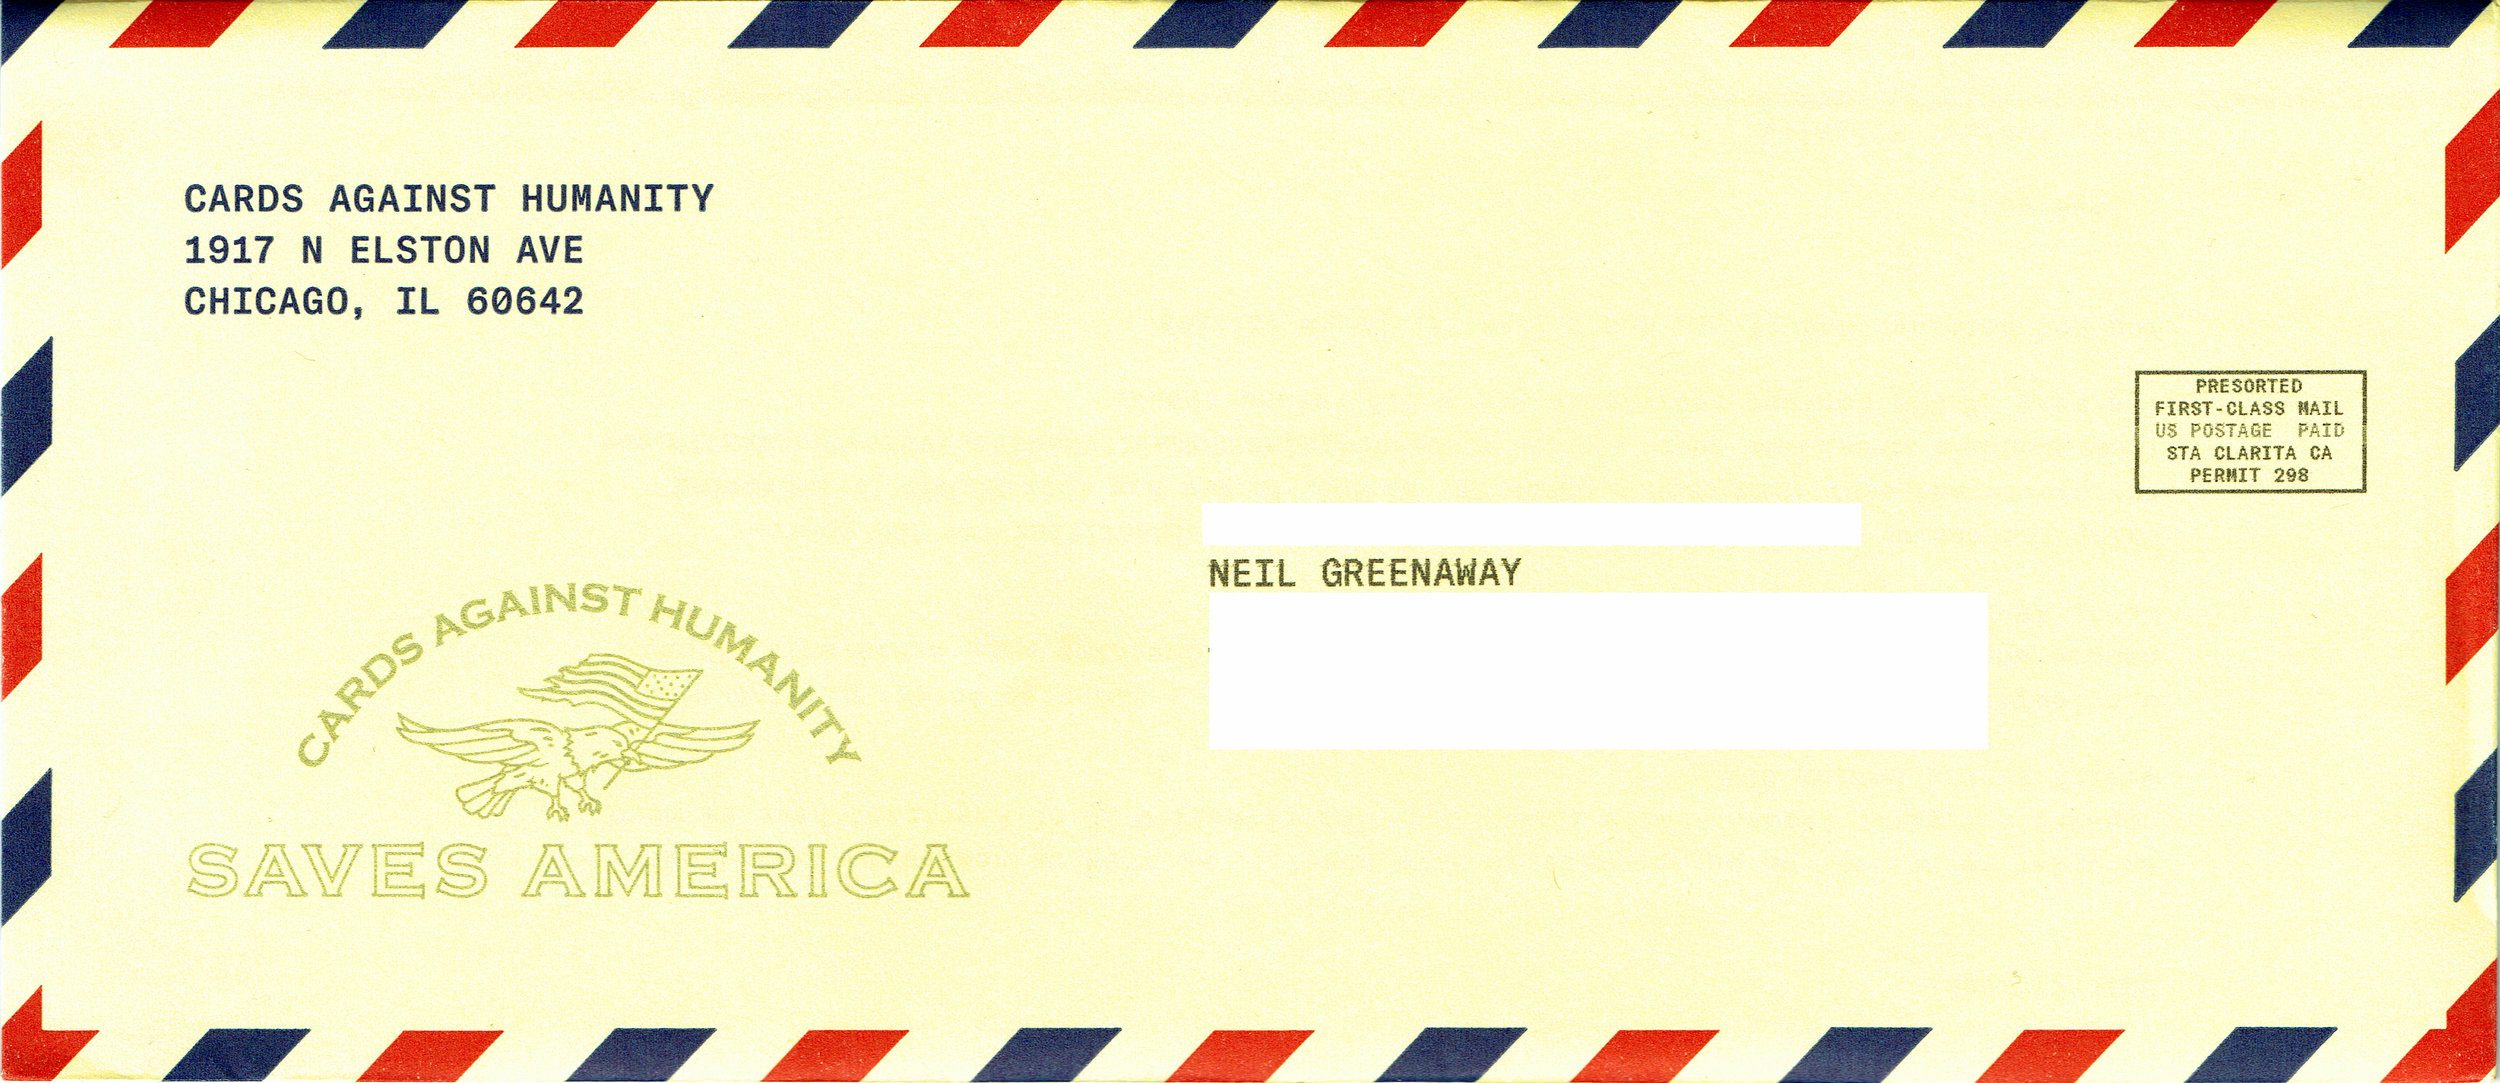 Cards Against Humanity Saves America - Day 3 Envelope